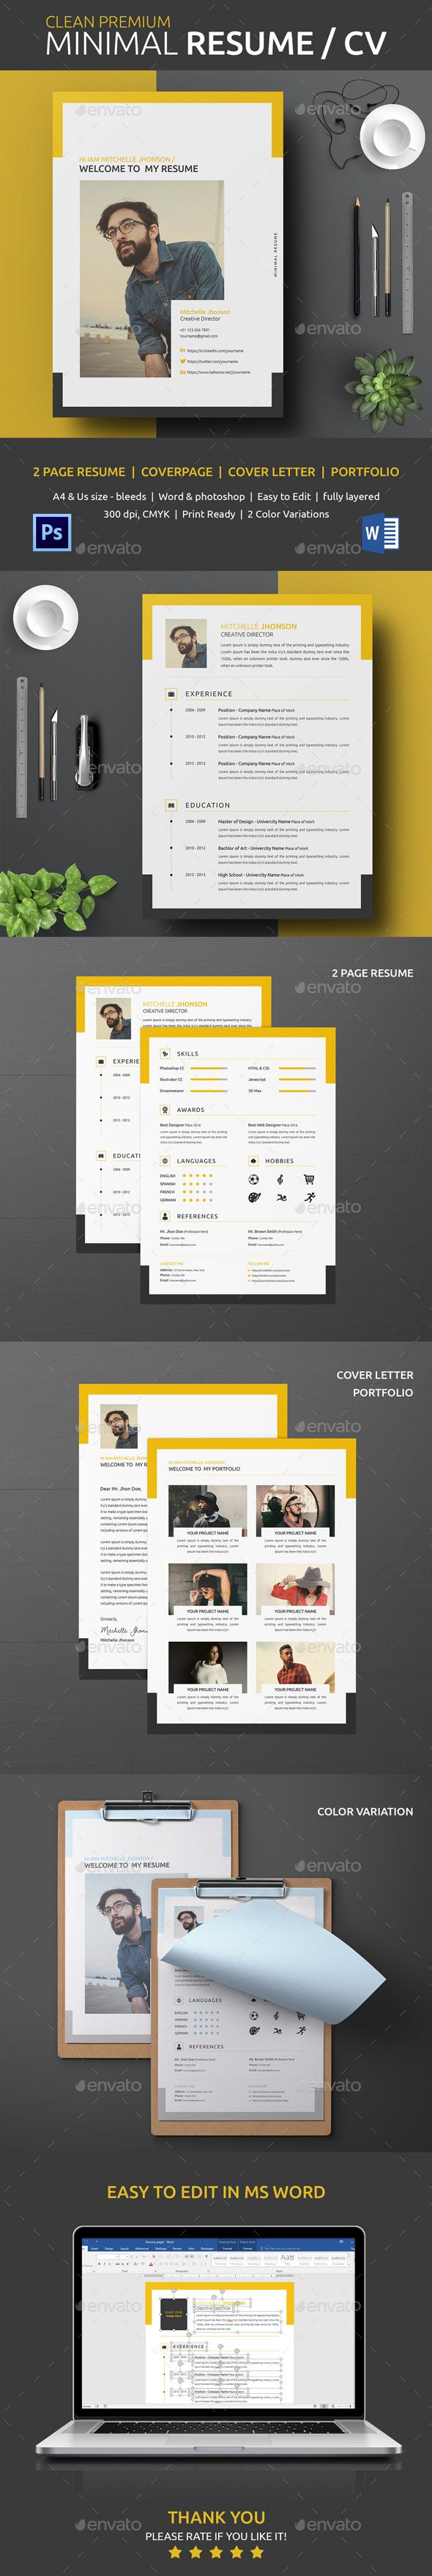 Excellent 10 Steps To Creating A Resume Huge 10 Words To Put On Your Resume Round 100 Greatest Resume Words 100 Resume Words Youthful 10x10 Grid Template Bright12 Tab Divider Template Two Page Resume | Resume Sample Format